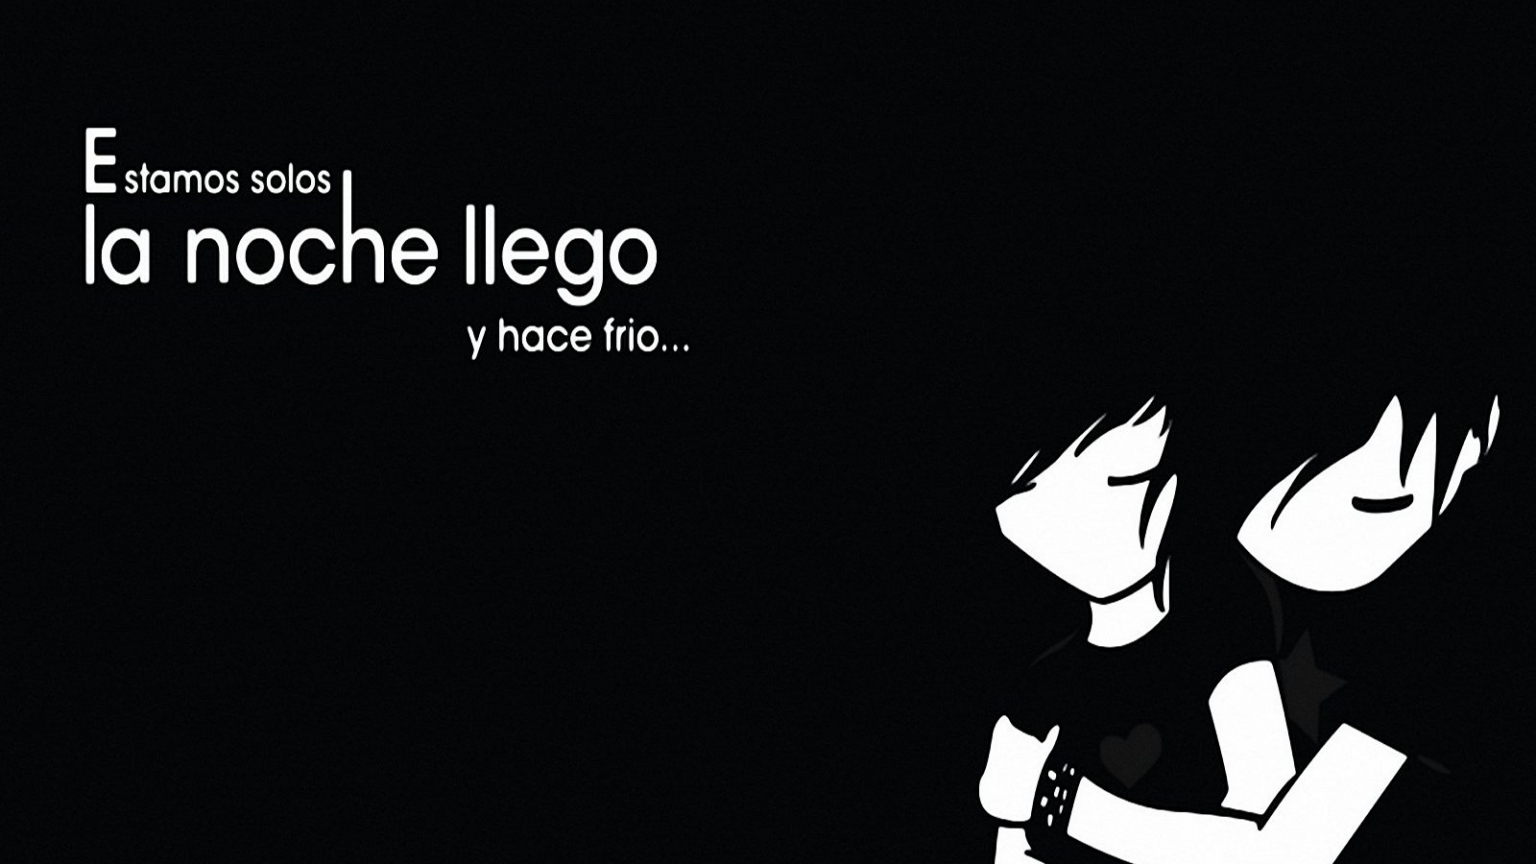 Wallpaper Sad Emo Wallpaper Sad Emo Wallpaper Sad Emo - Will Never Let You Go , HD Wallpaper & Backgrounds